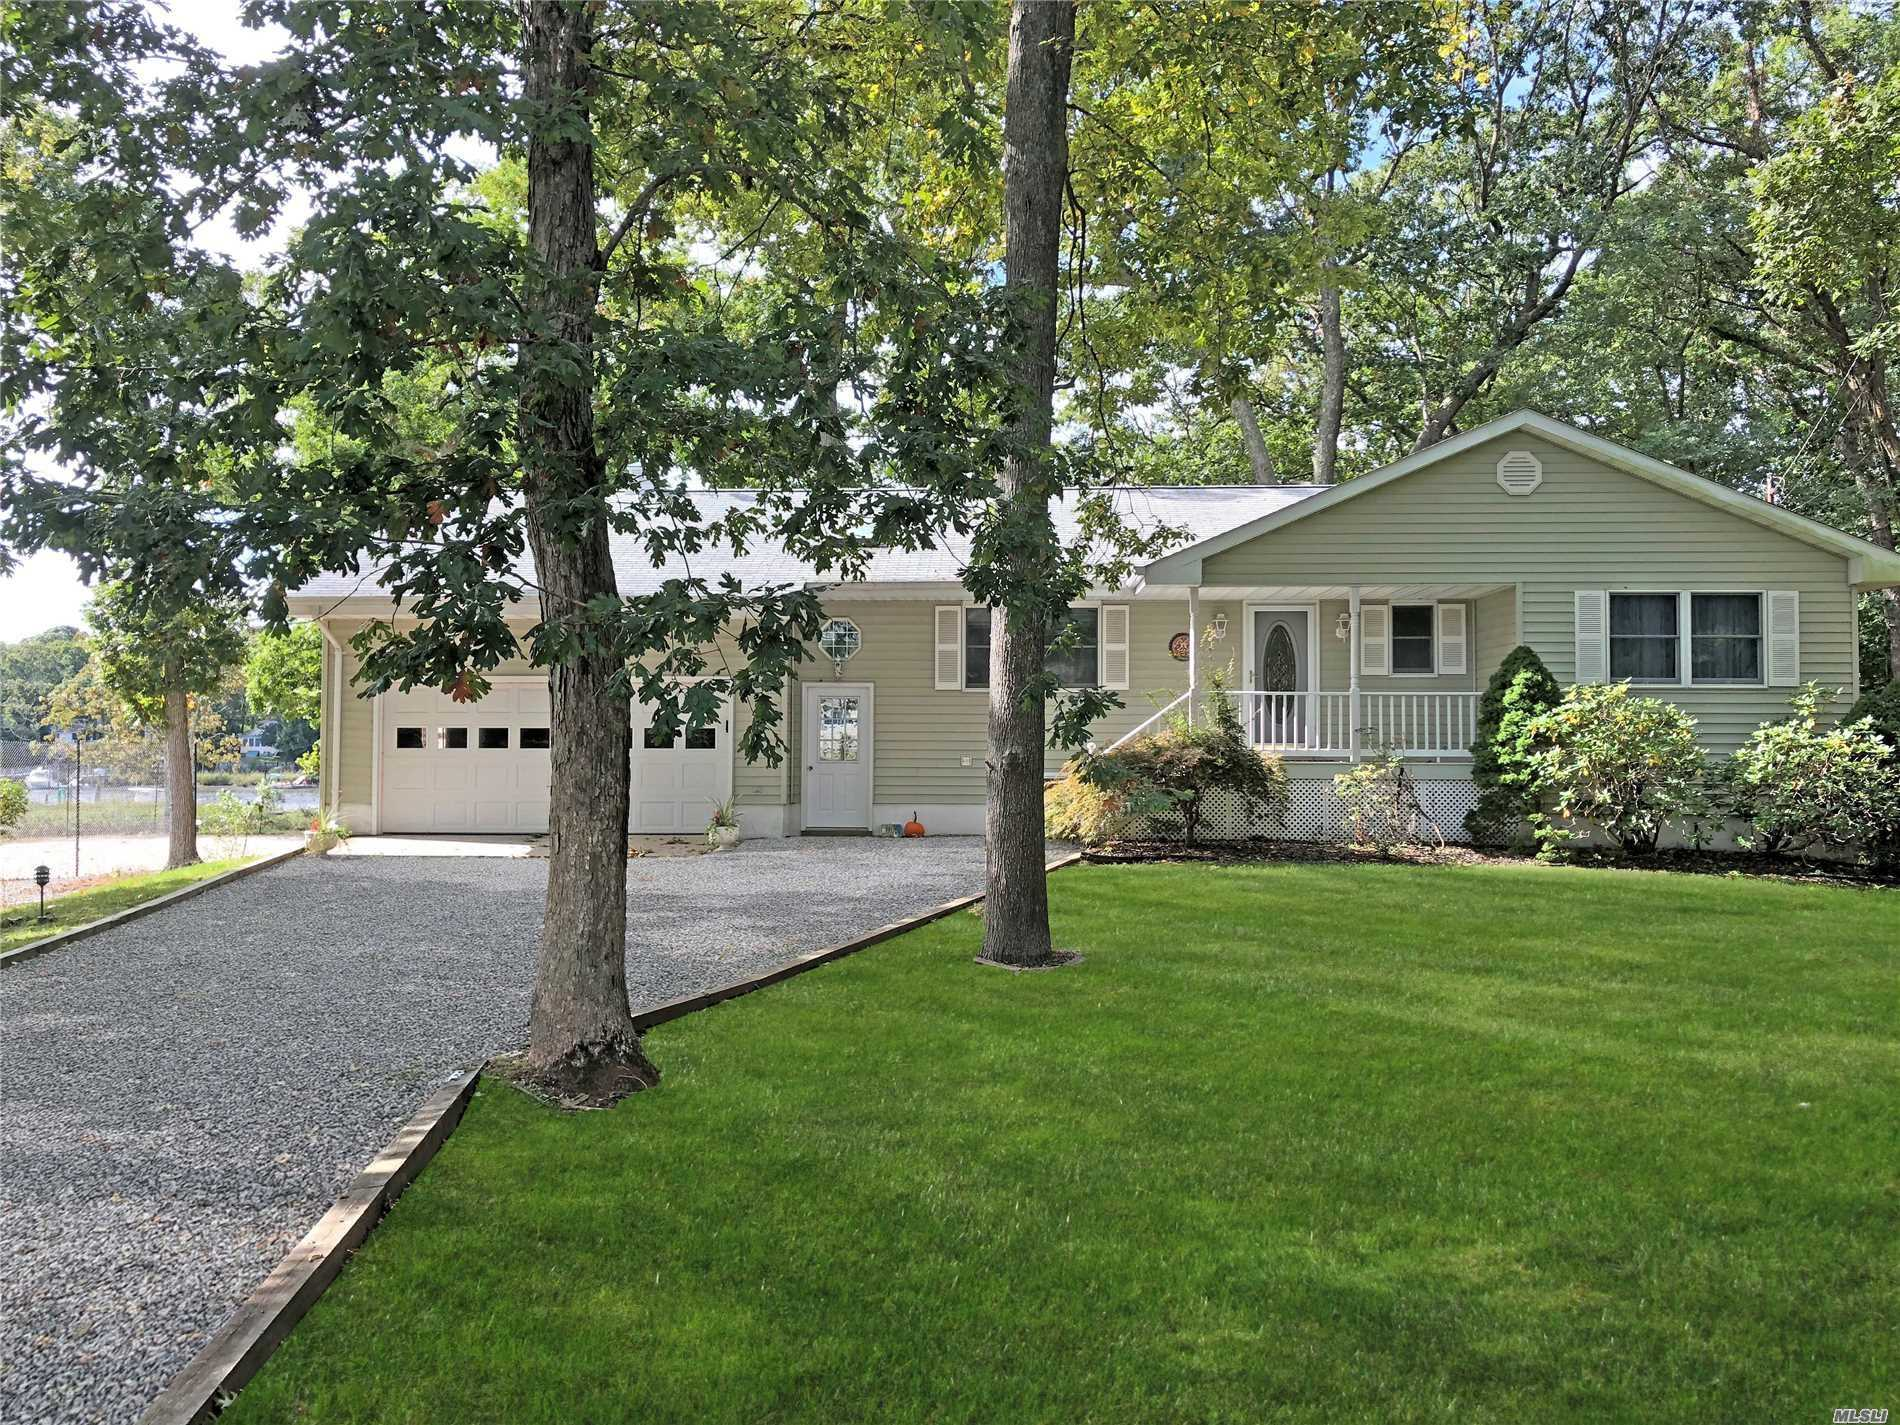 Beautiful Ranch On 105' Waterfront On Eugene's Creek With Direct Access To The Bay. Bring Your Boat To The Deep Water Dock. Situated On Shy Acre With Large Deck Overlooking Water. Great House For Entertaining- Boasts 2 Fireplaces, With Walk-Out Lower Level. Minutes To Wineries, Restaurants And Beaches! Come See This North Fork Dream Get-A-Way!